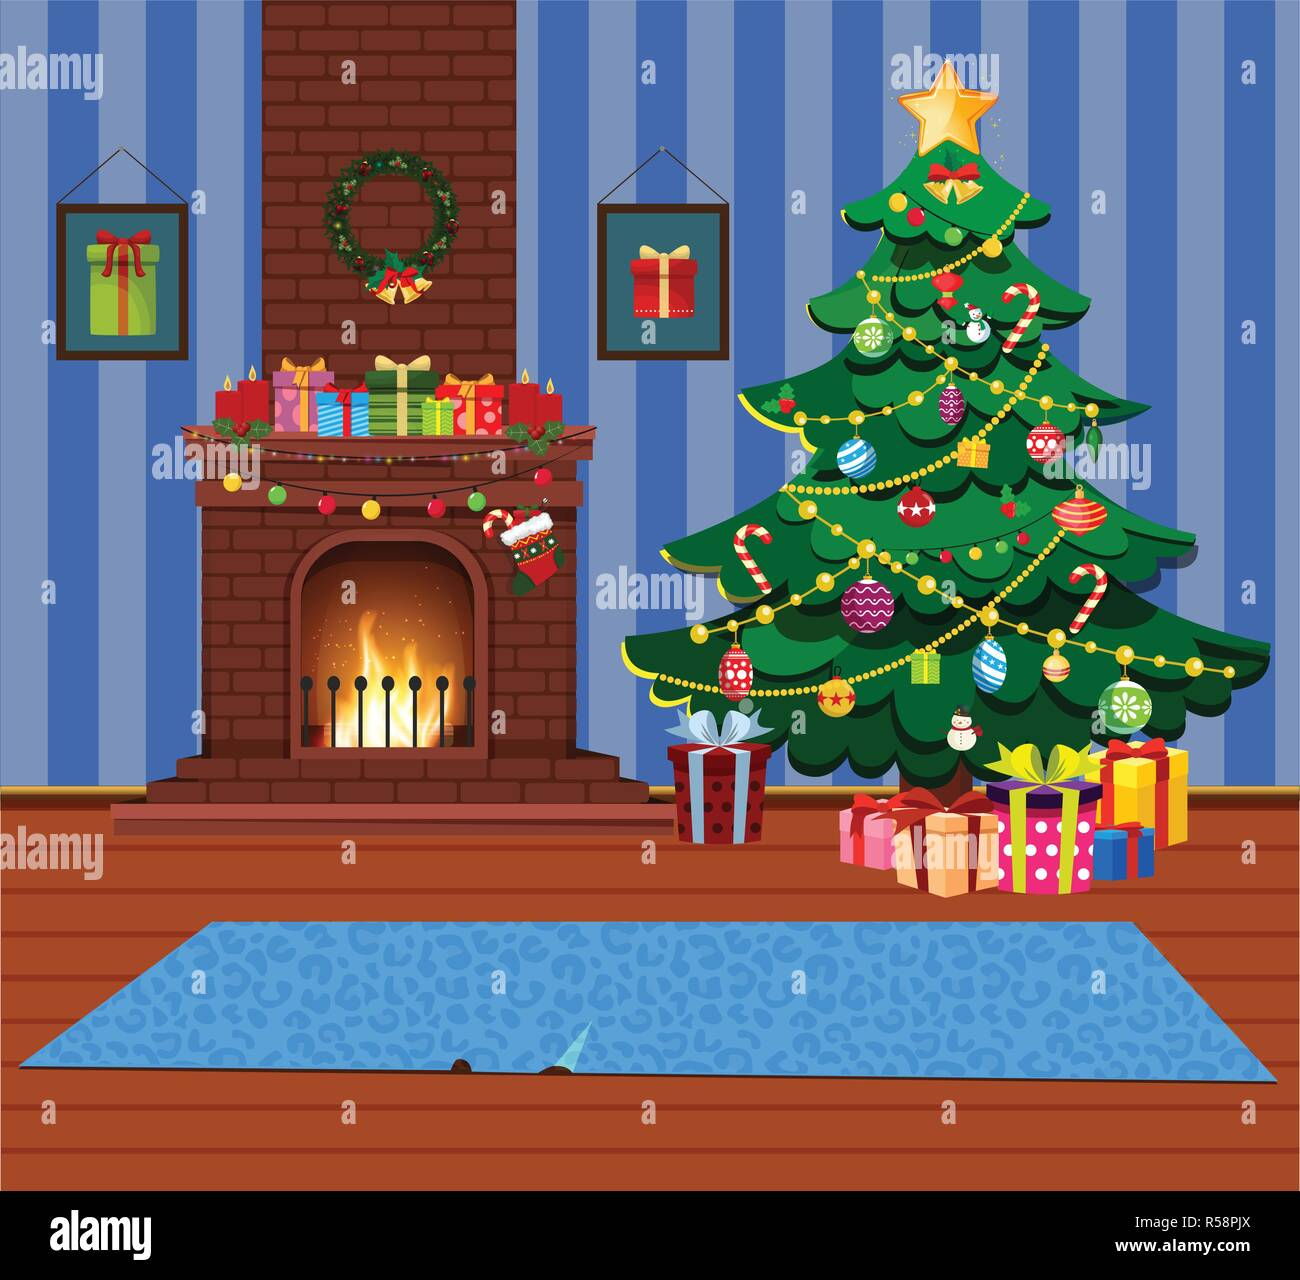 Cartoon Home Indor Cozy Comfort Interior Of Decorated Room With Burning Fire Place And Fir Xmas Tree With Many Gifts And Presents Vector Christmas Or Stock Vector Image Art Alamy Beautifully decorated christmas tree, cartoon vector illustration isolated on white background. https www alamy com cartoon home indor cozy comfort interior of decorated room with burning fire place and fir xmas tree with many gifts and presents vector christmas or image227001458 html